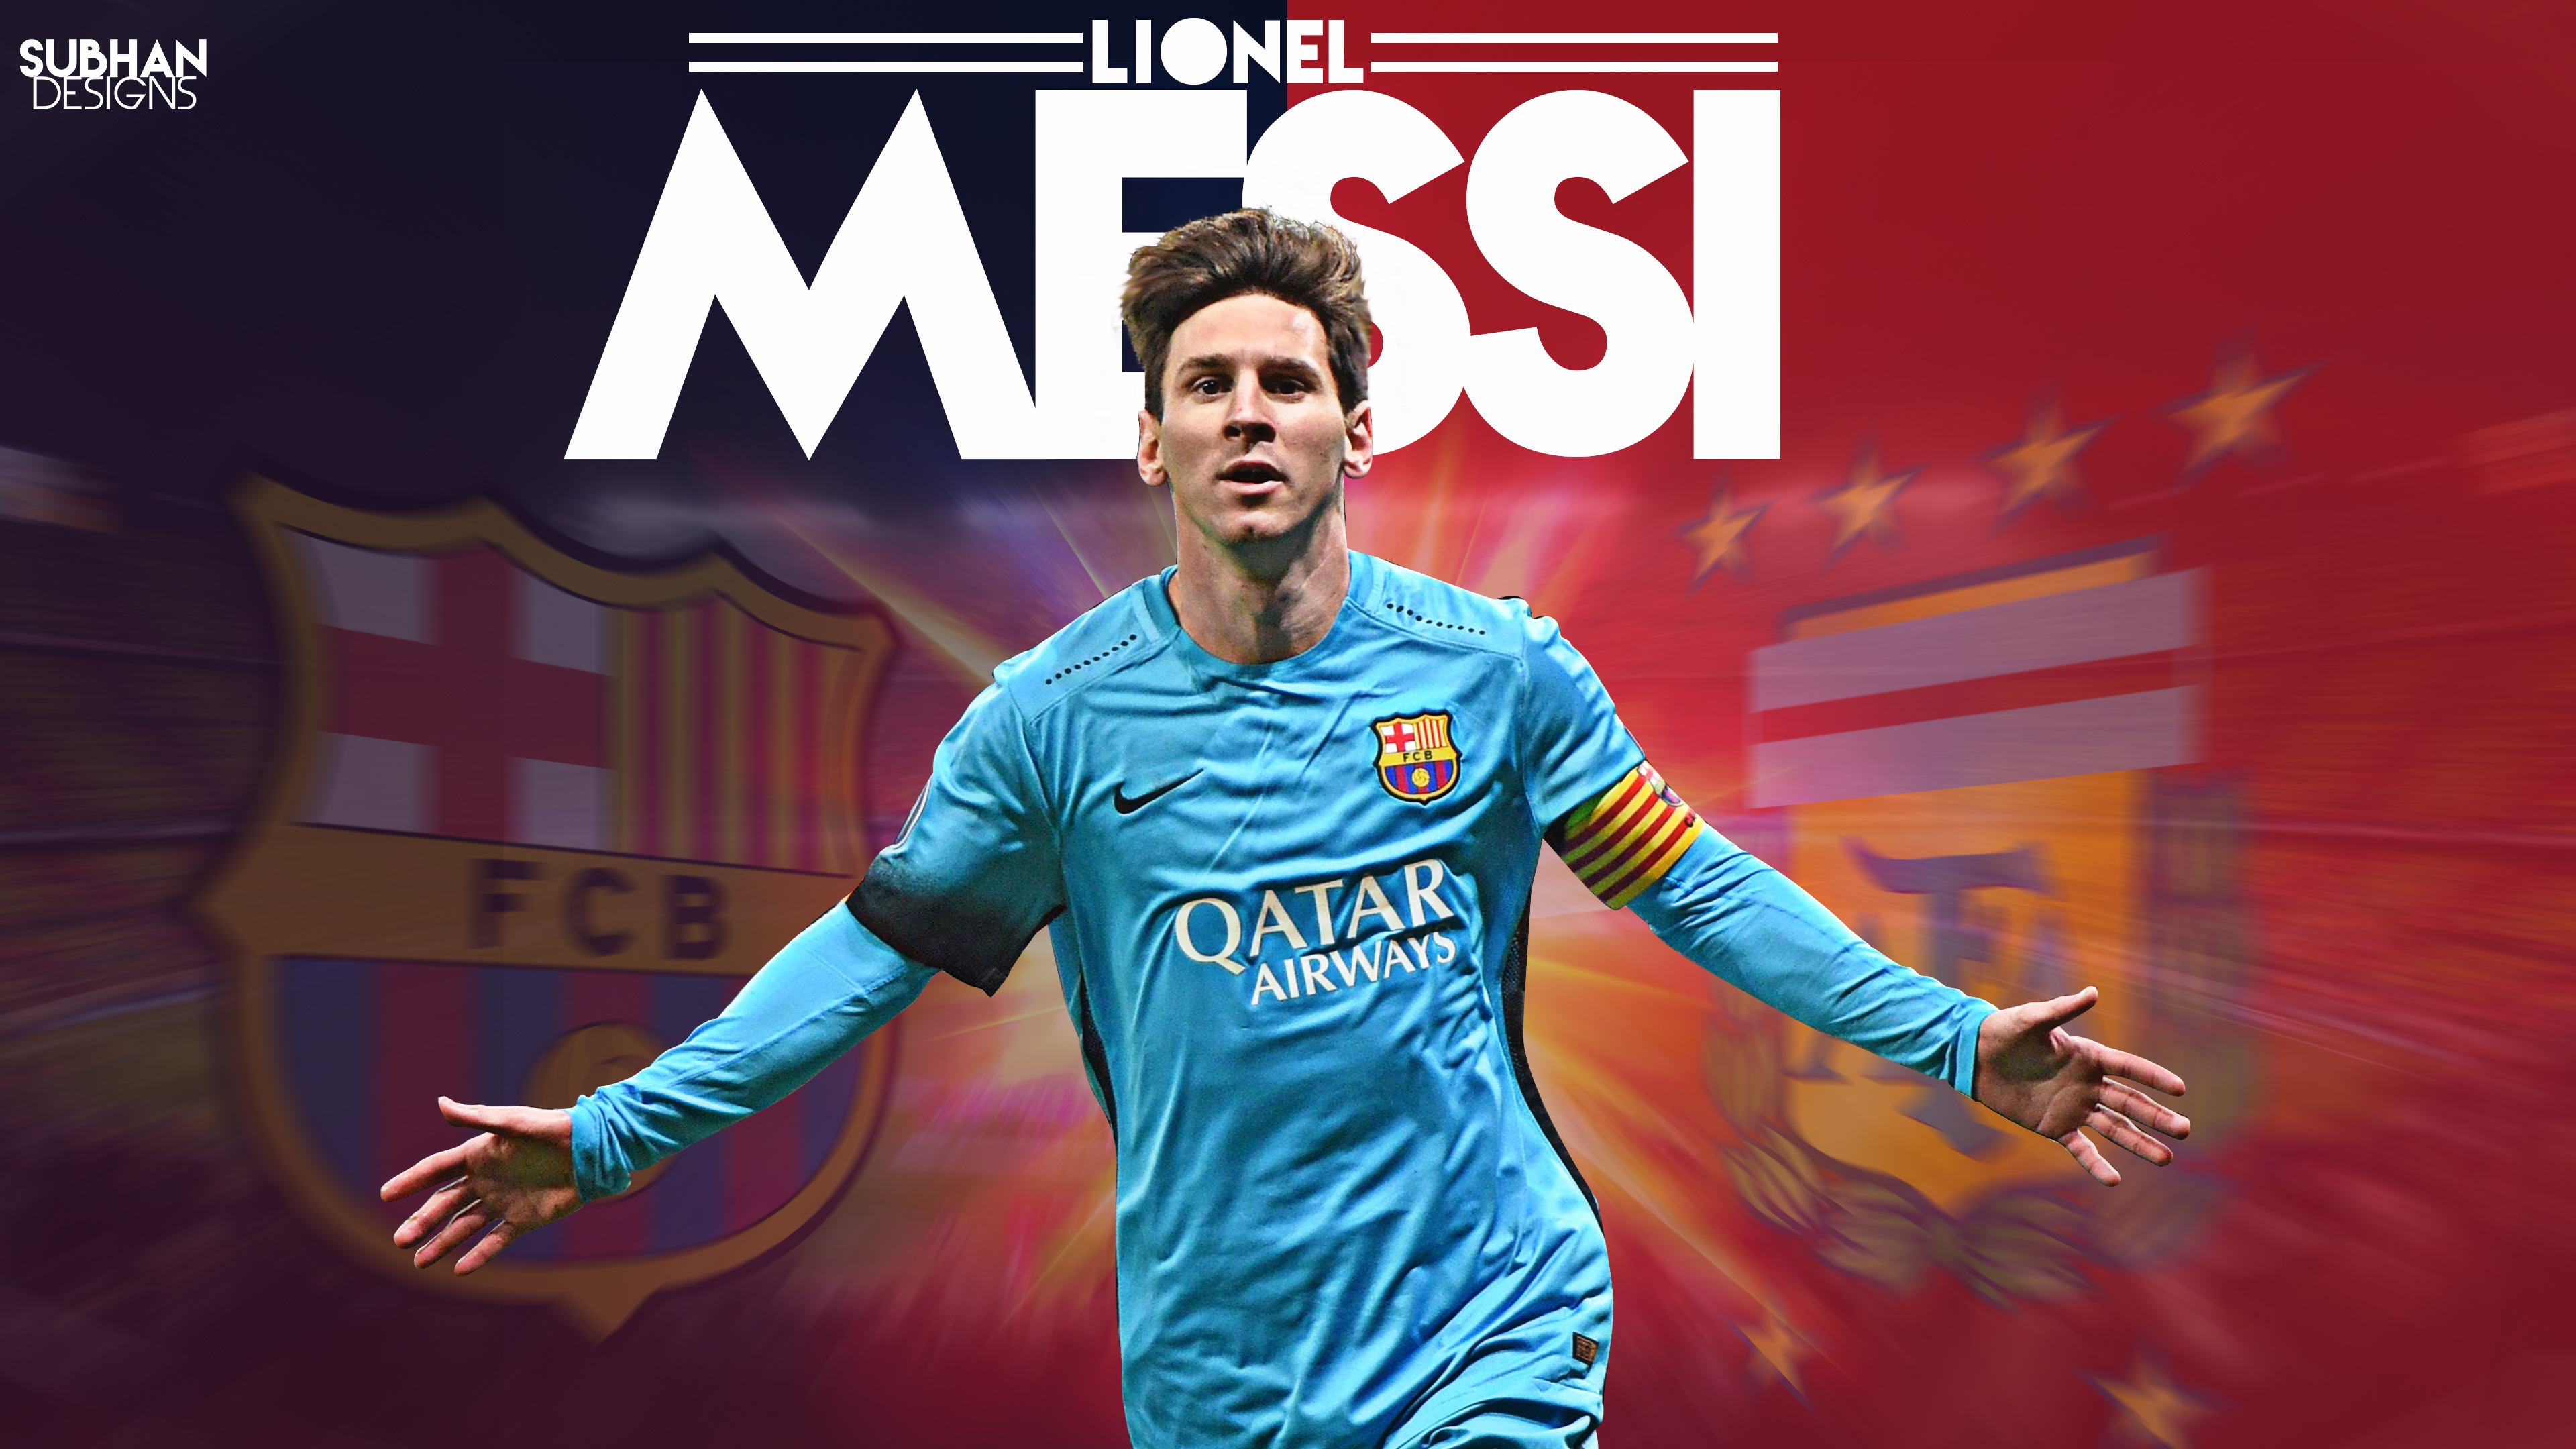 Lionel Messi 2016 Wallpaper HD   HD Wallpapers Backgrounds 3840x2160